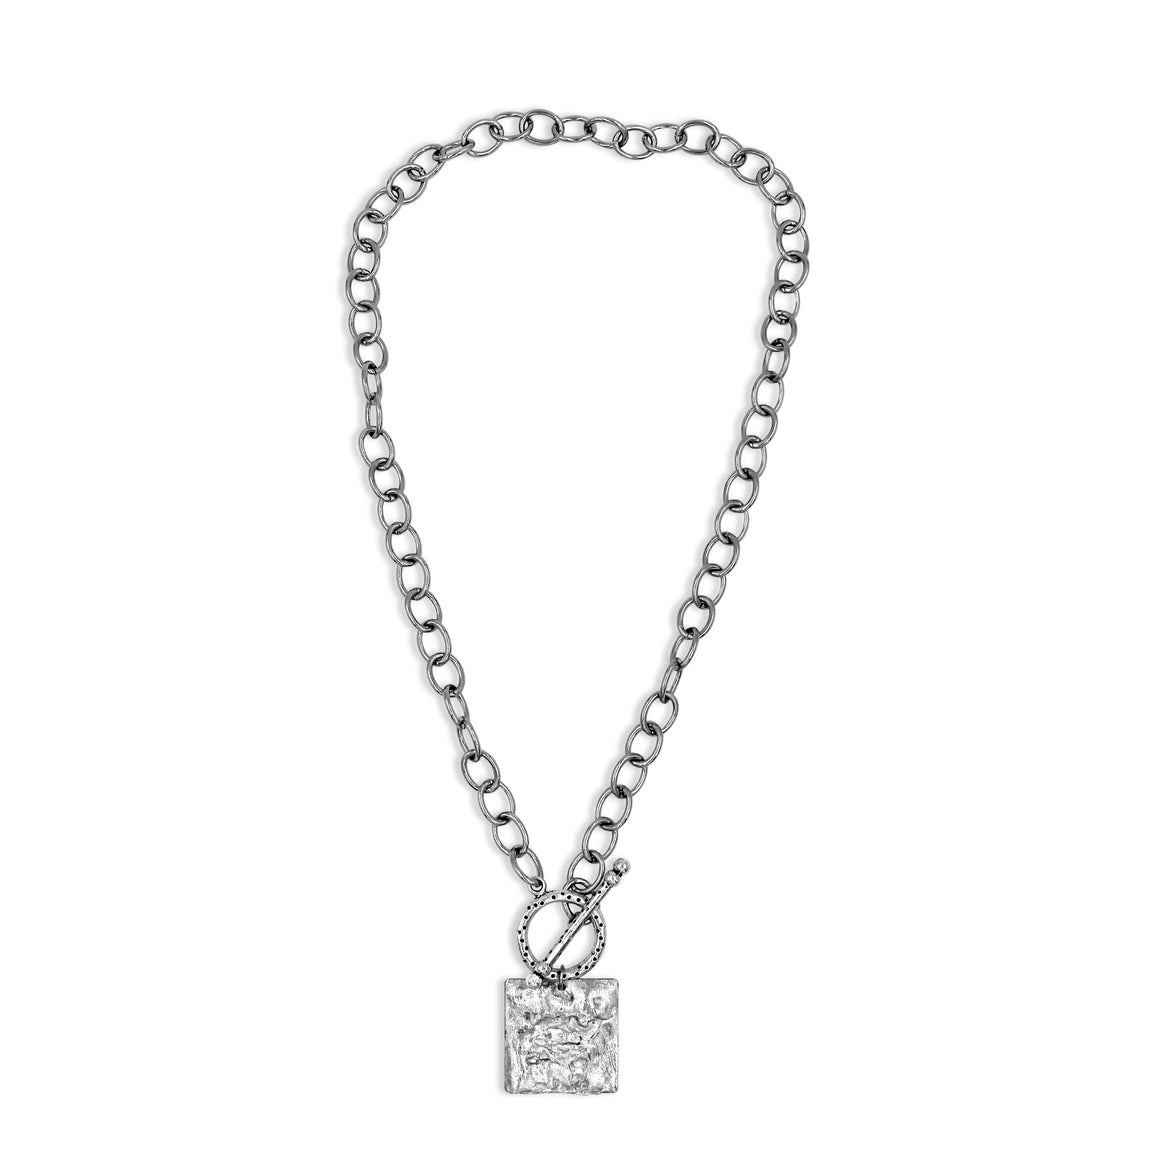 Silver Statement Necklace with Square Pendant